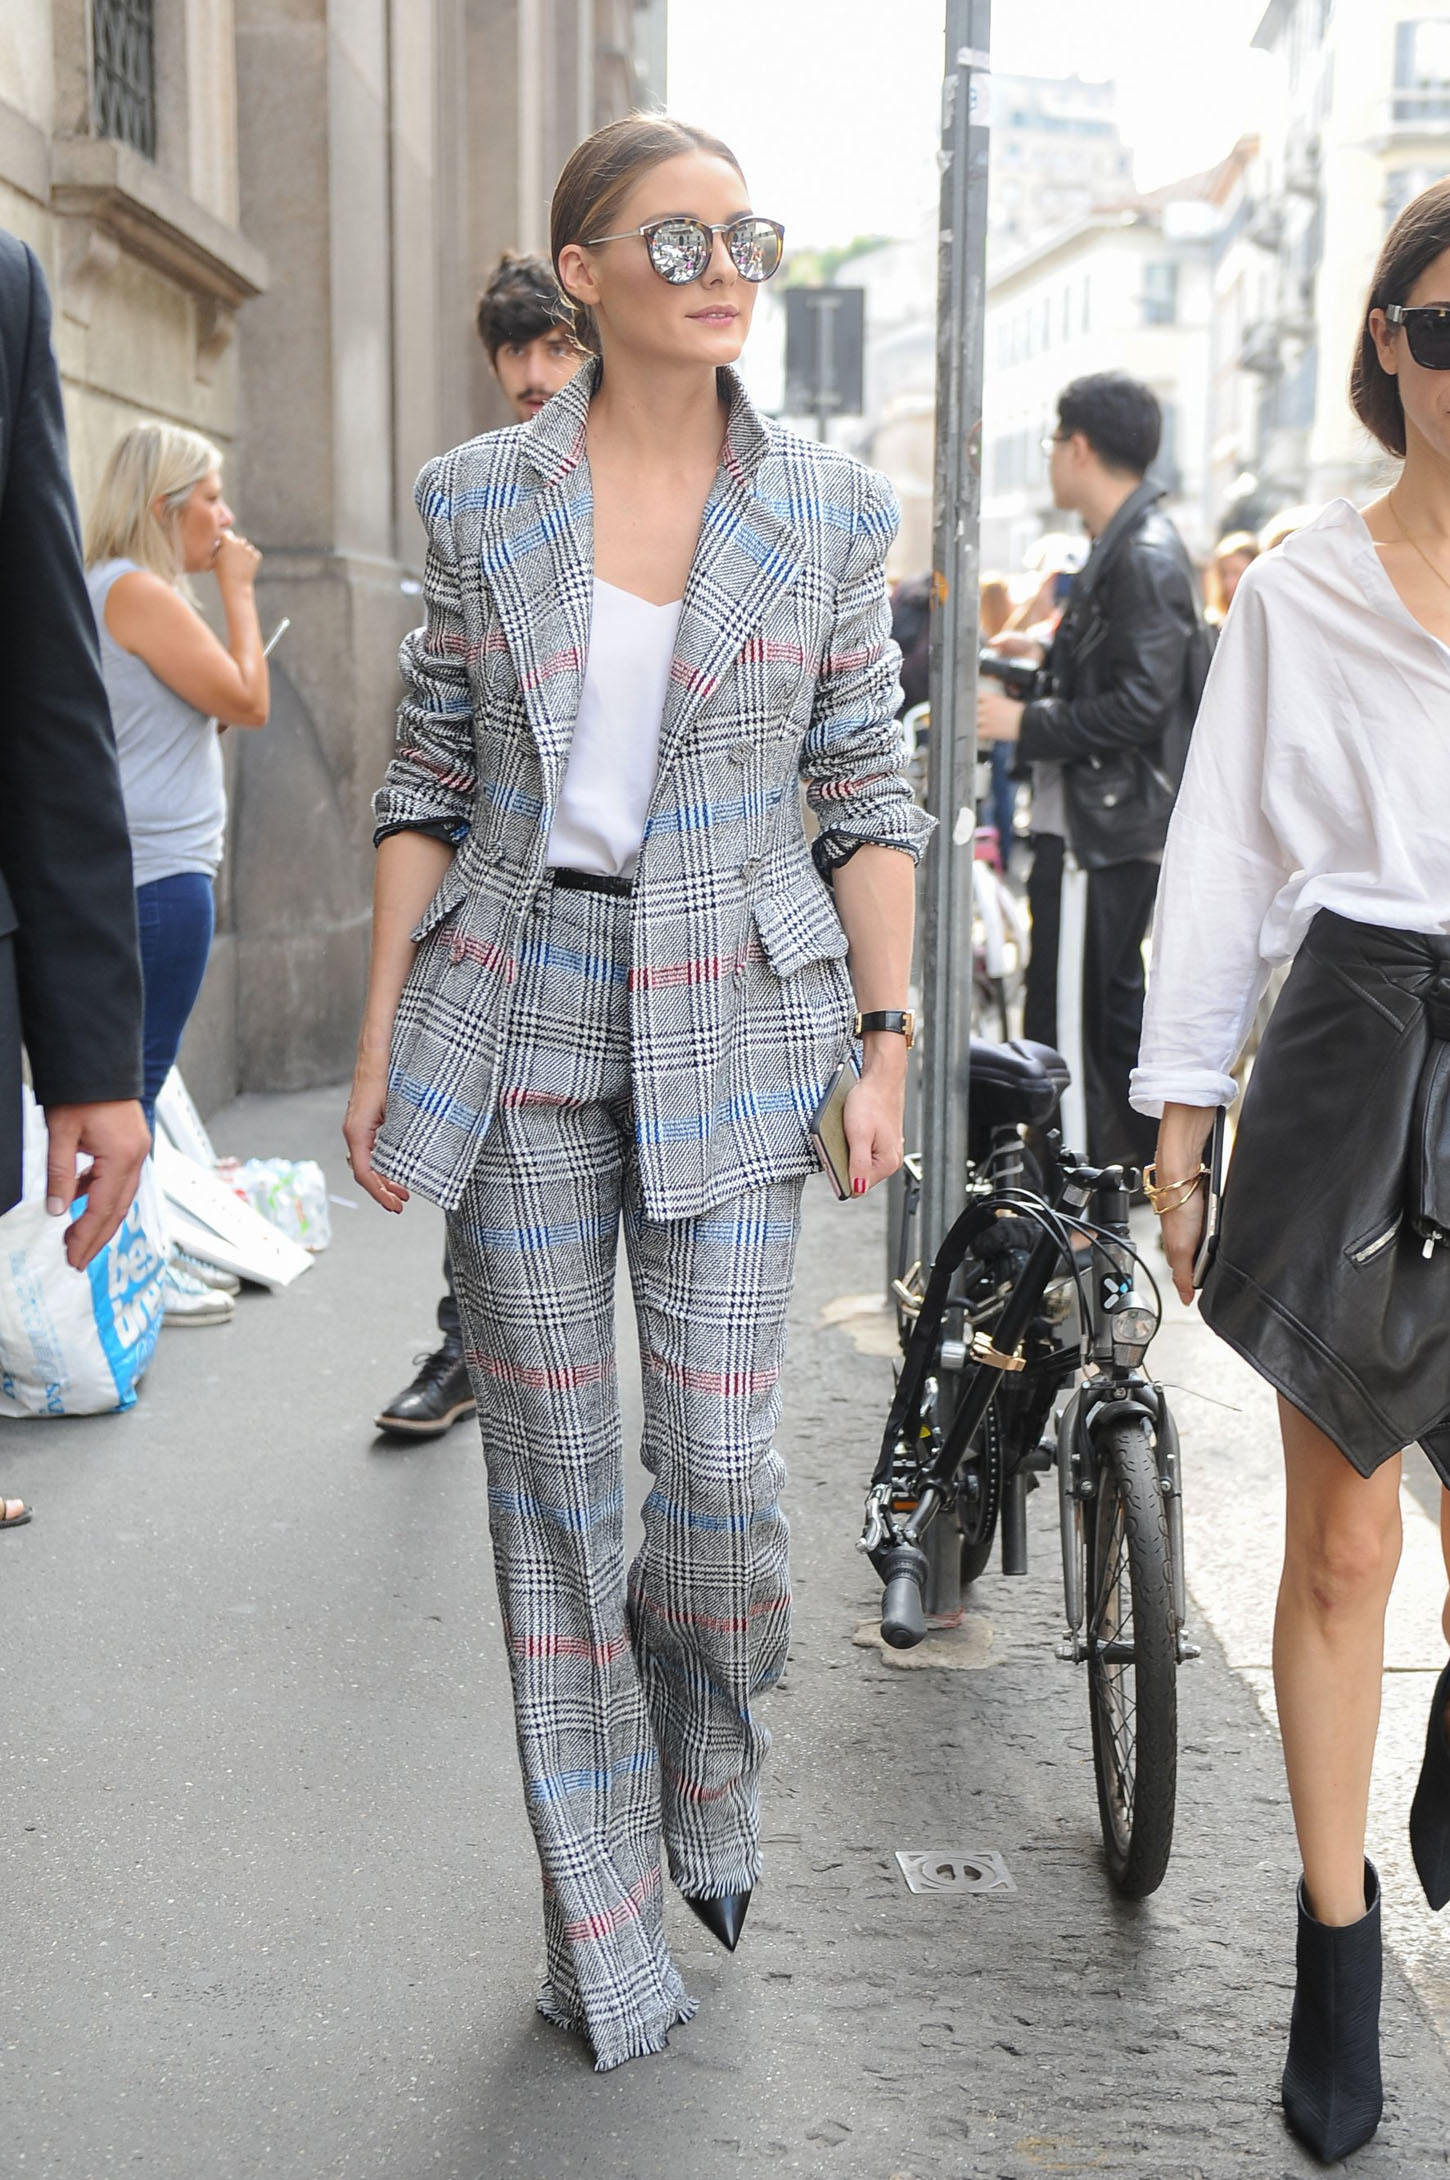 Olivia Palermo  Women Fashion Show SS 2018 Ermanno Scervino street style Milan - Italy 23 september 2017 id  112995_002 *not exclusive, Image: 350345110, License: Rights-managed, Restrictions: , Model Release: no, Credit line: Profimedia, SGP